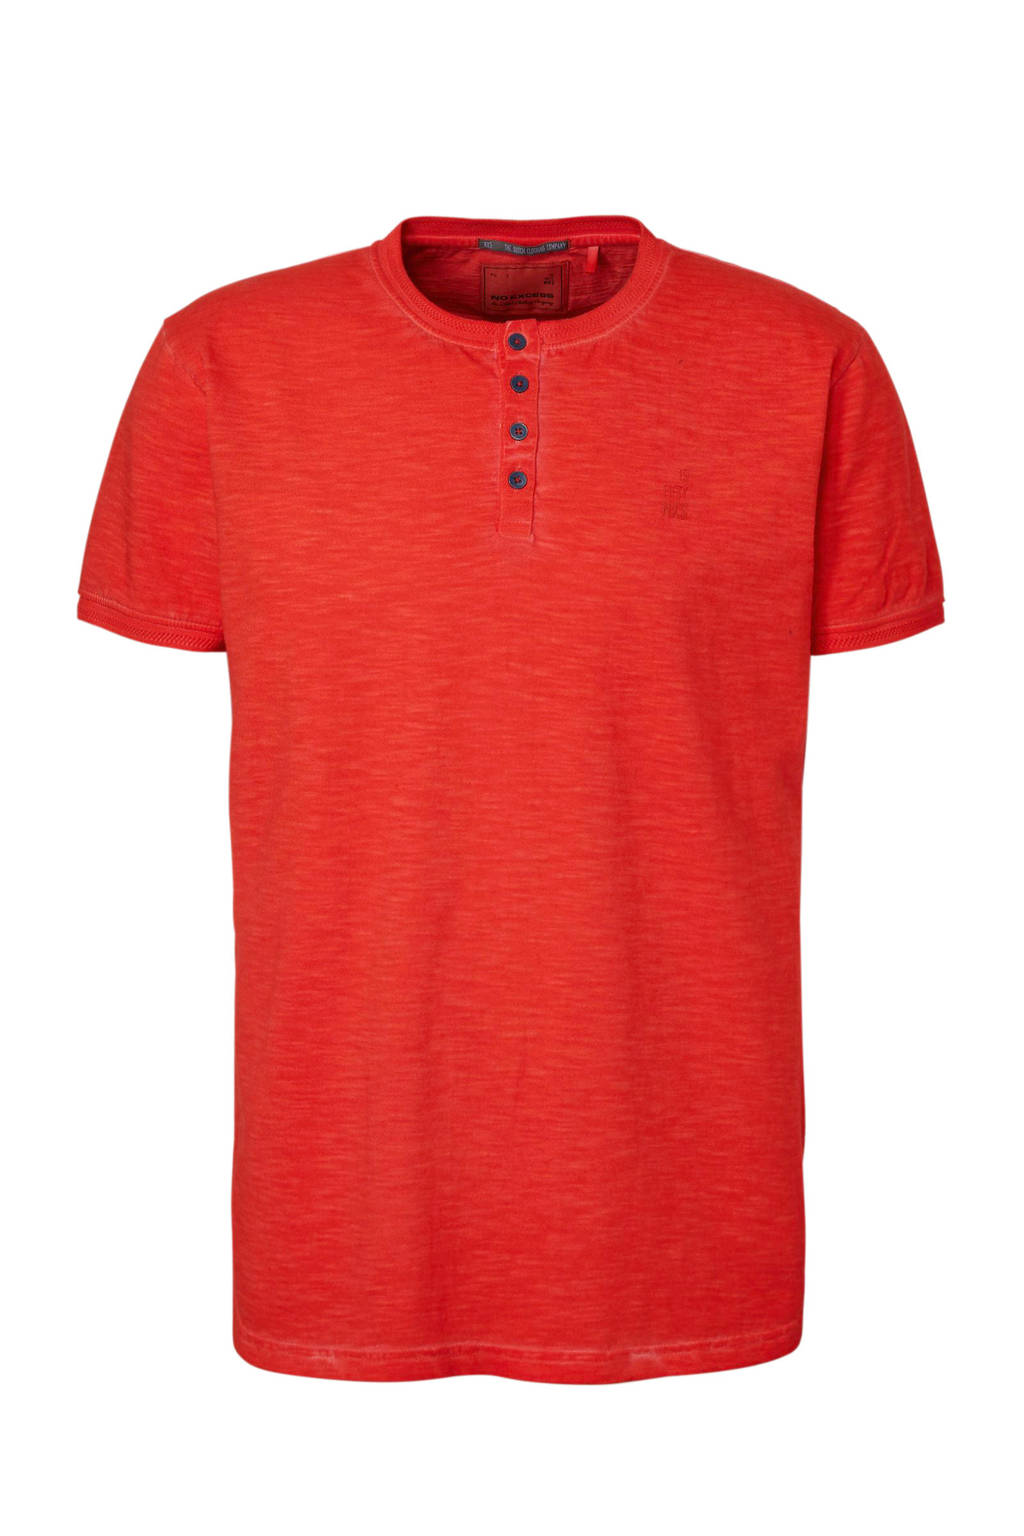 No Excess T-shirt rood, Rood